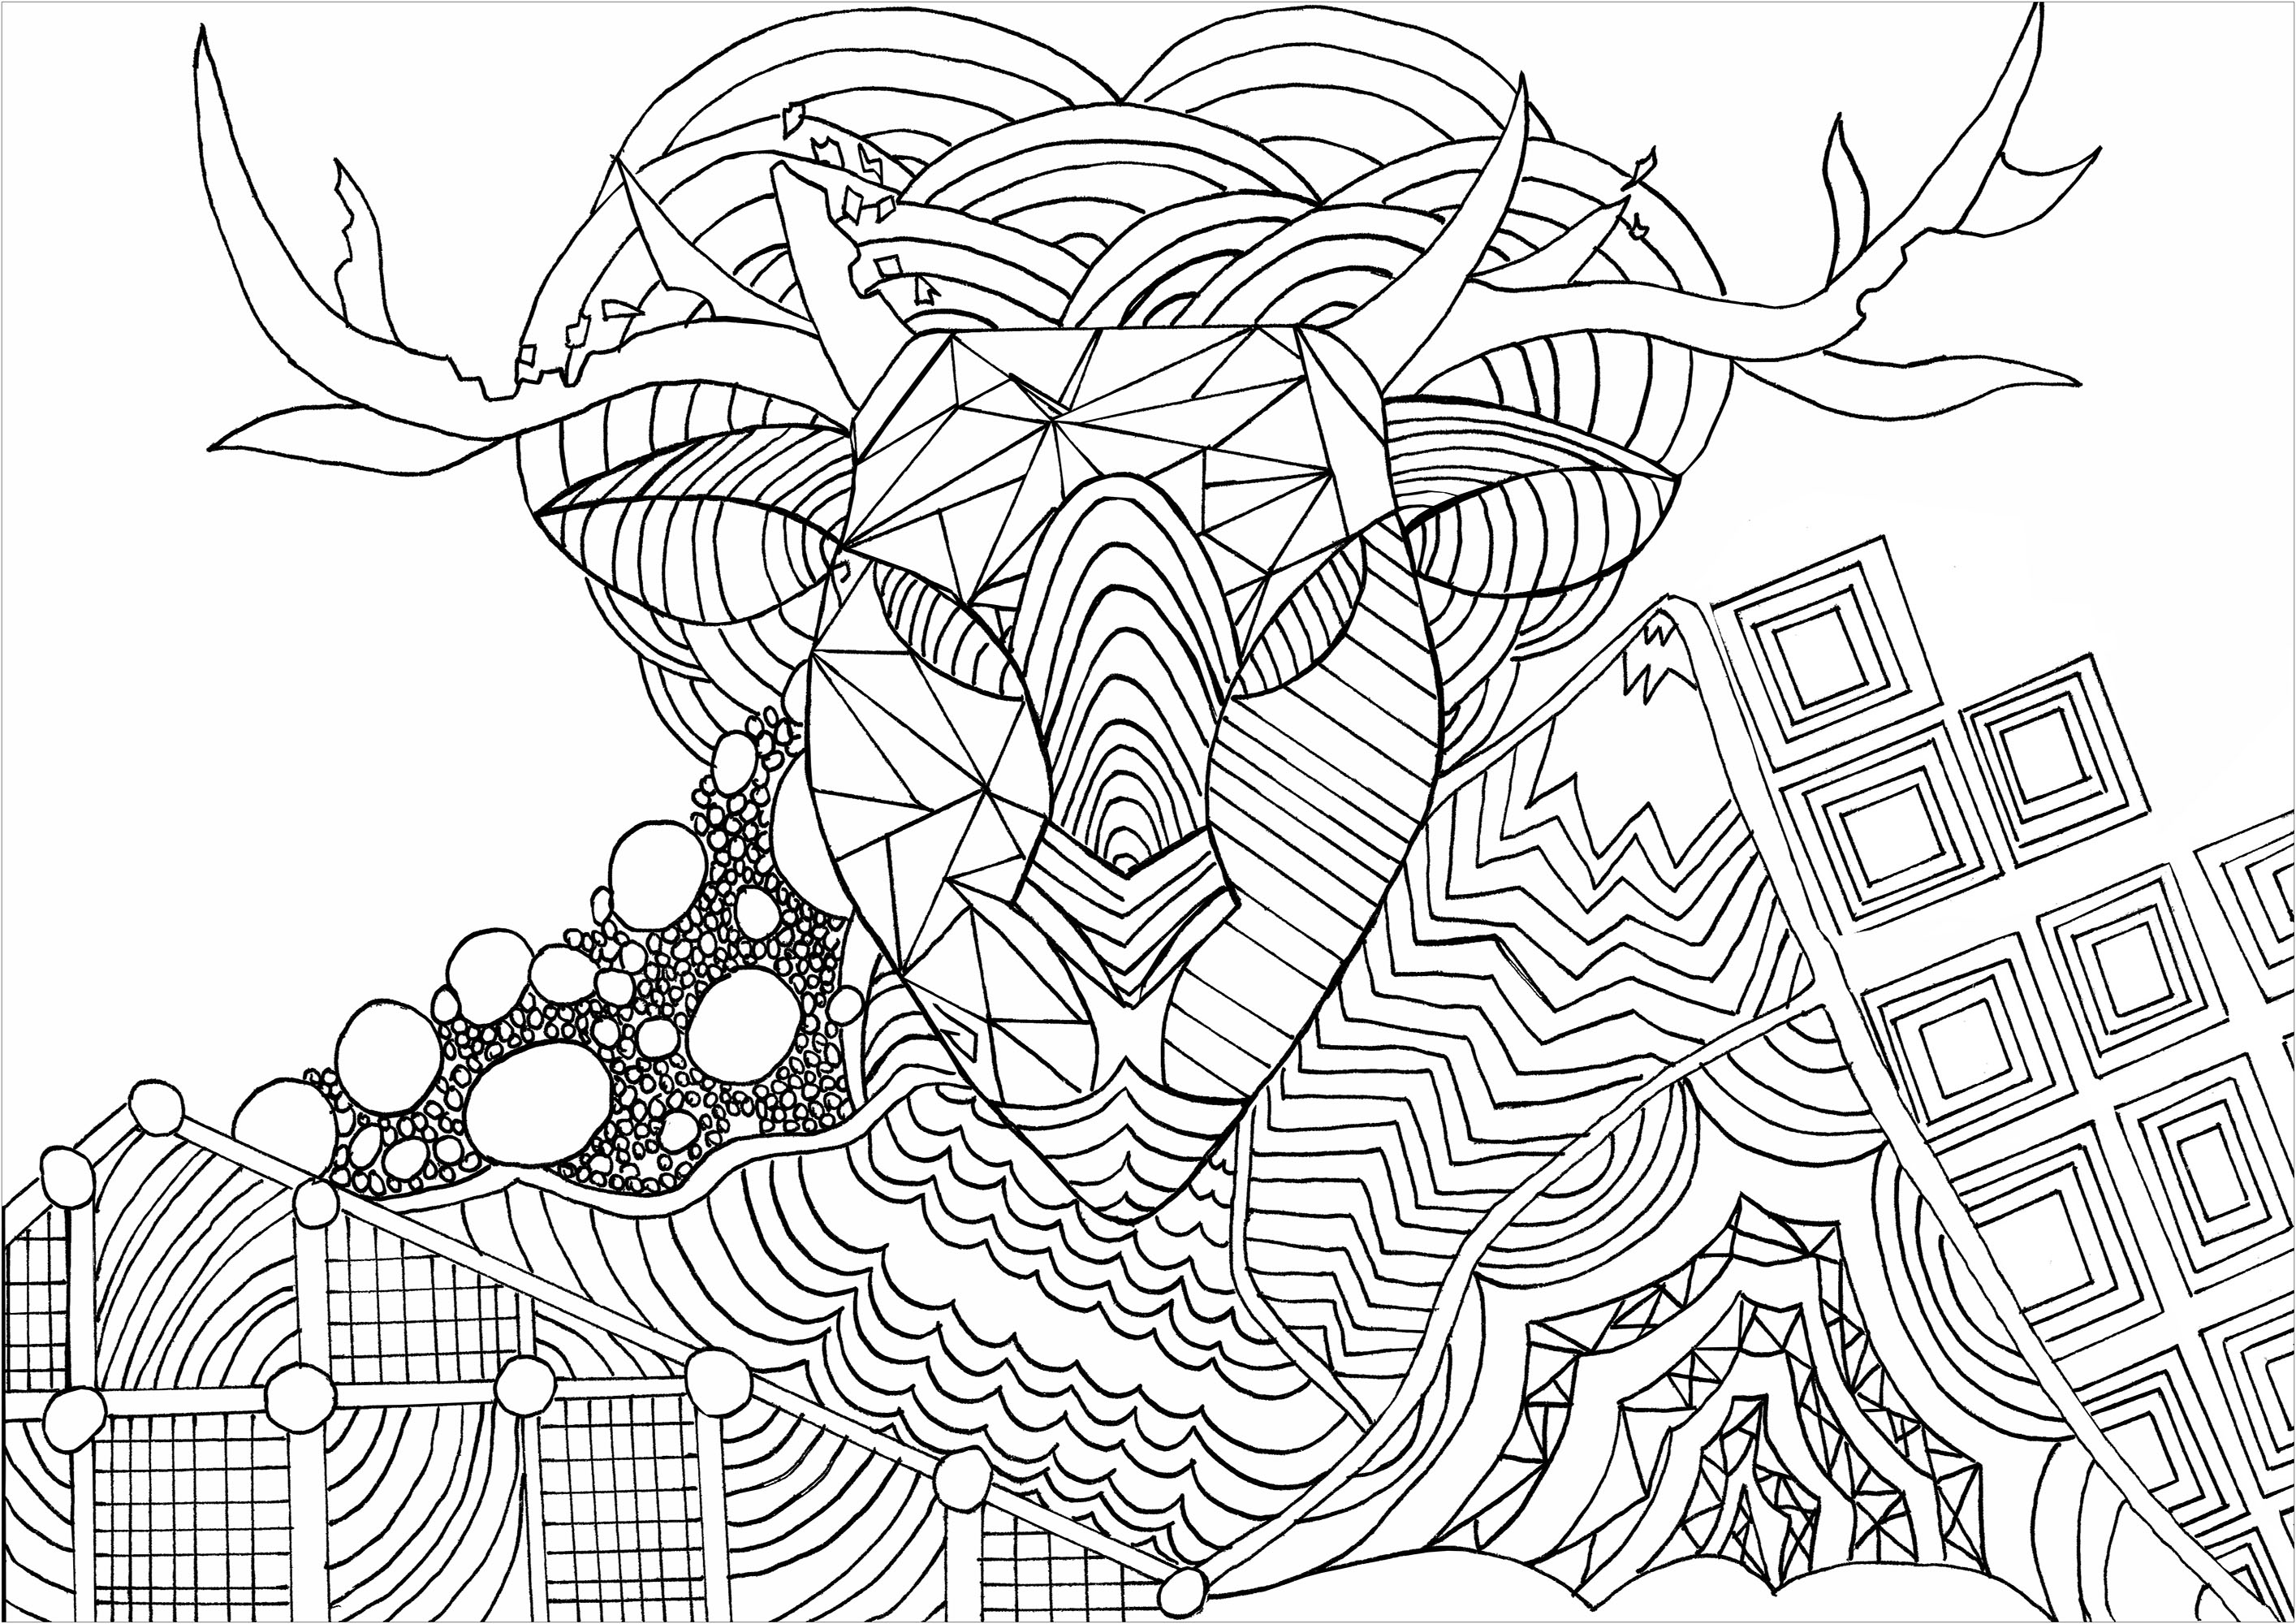 A Christmas Reindeer drawn with Zentangle patterns